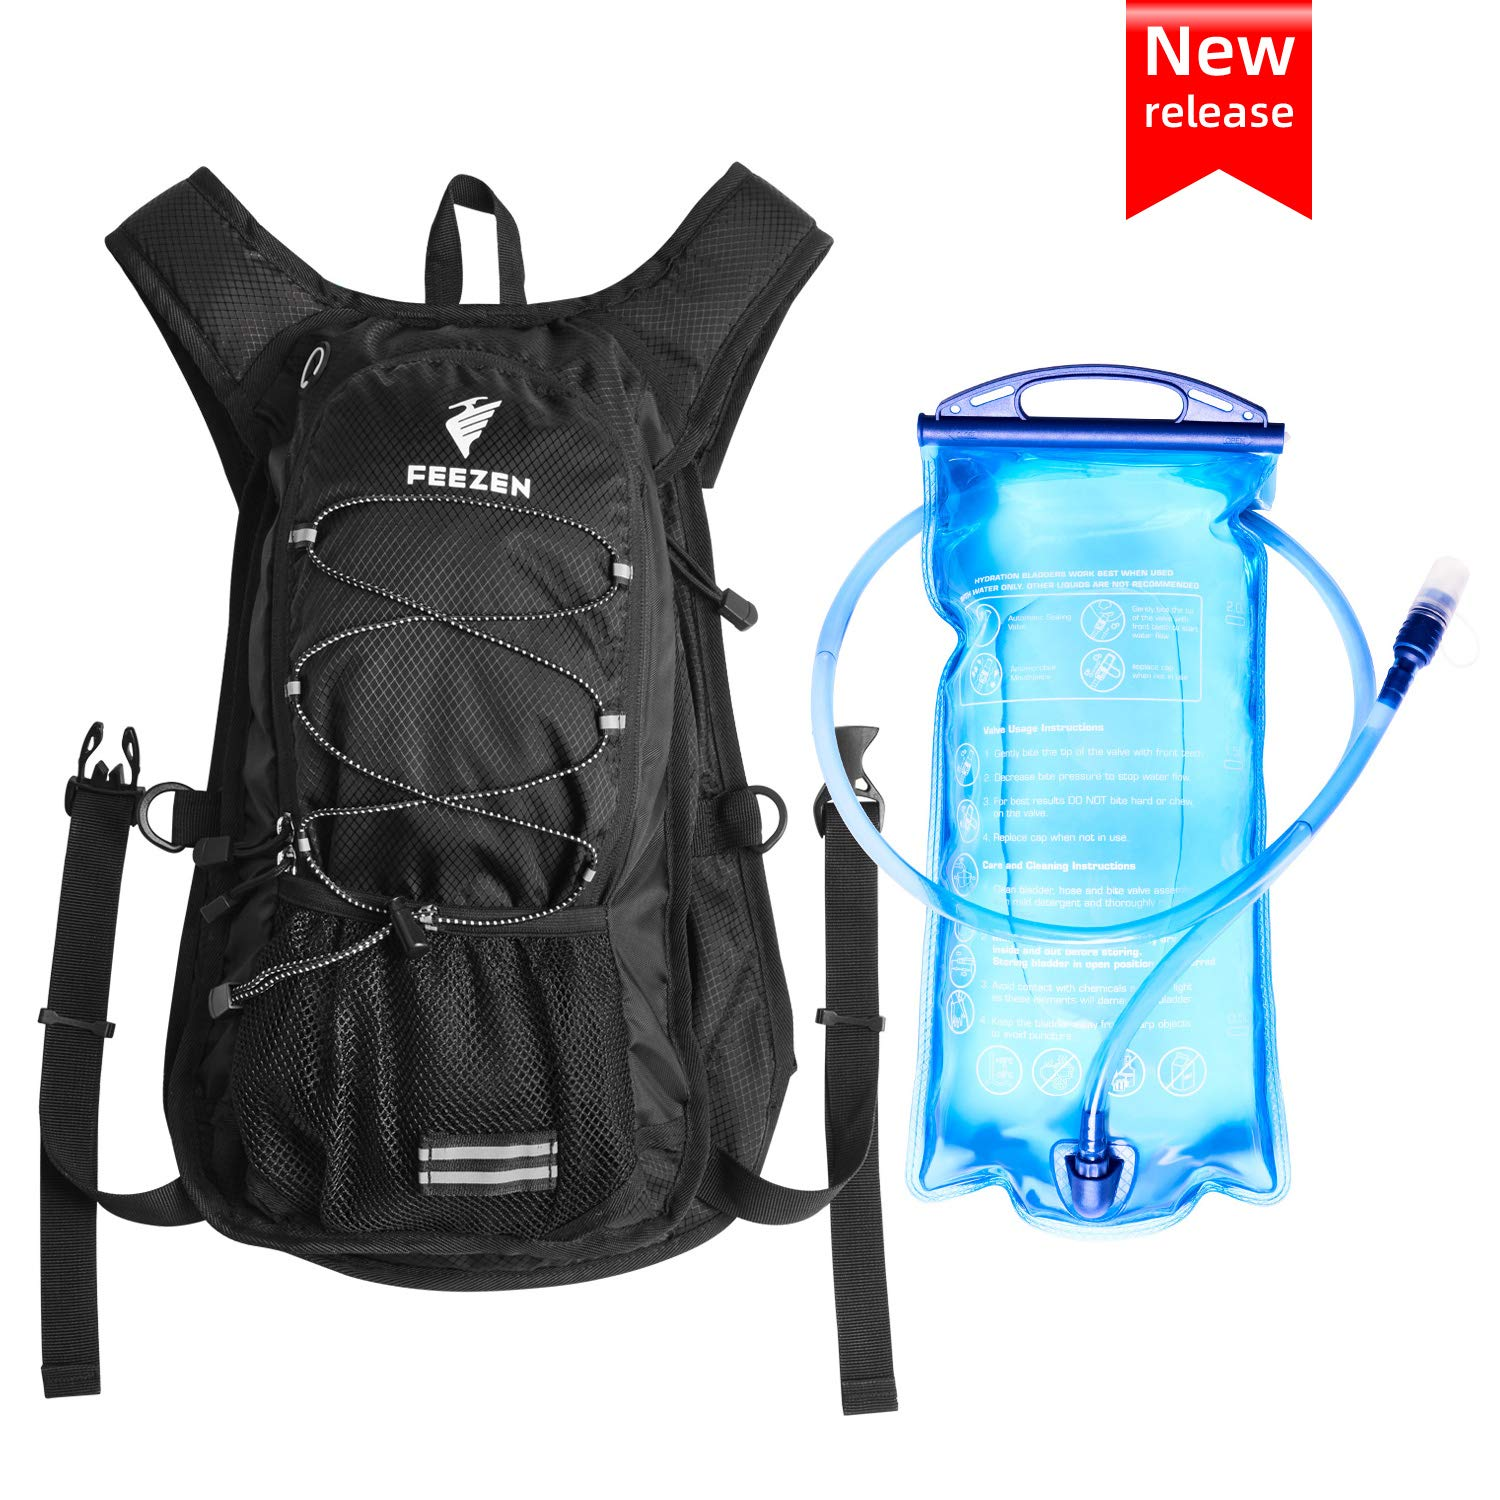 Feezen Insulated Hydration Backpack Pack with 2L BPA Free Bladder – Keeps Liquid Cool up to 4 Hours for Running, Hiking, Cycling, Camping